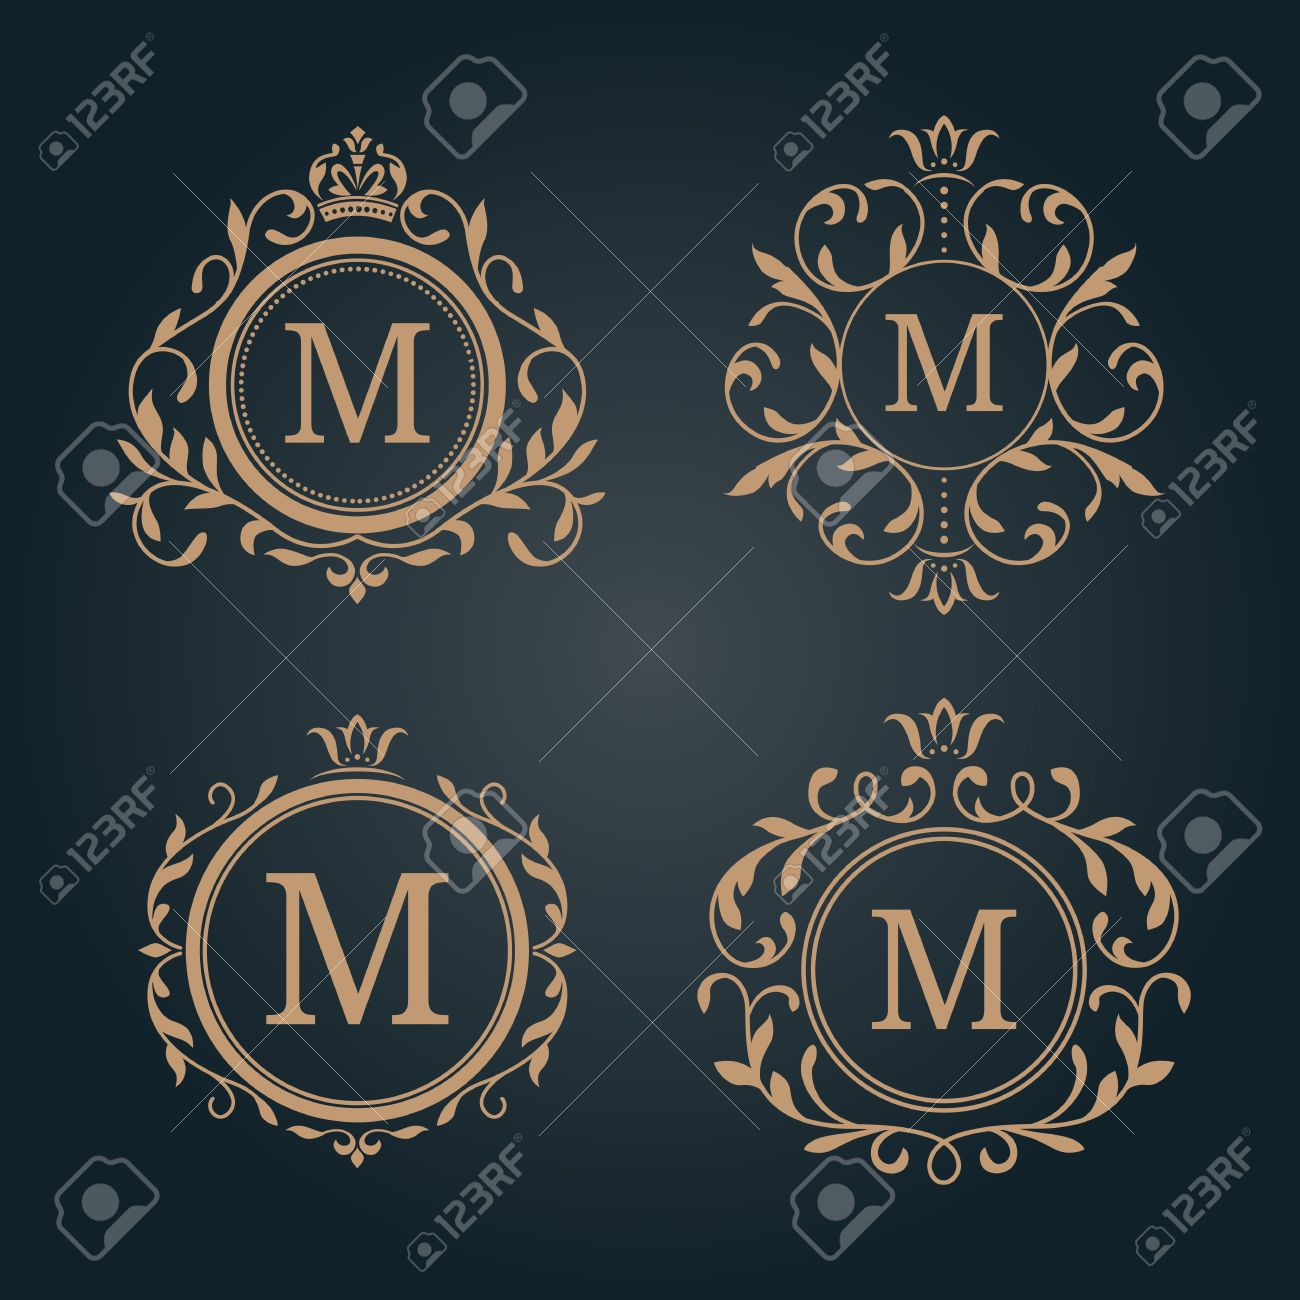 set of elegant floral monogram design templates wedding monogram calligraphic elegant ornament monogram